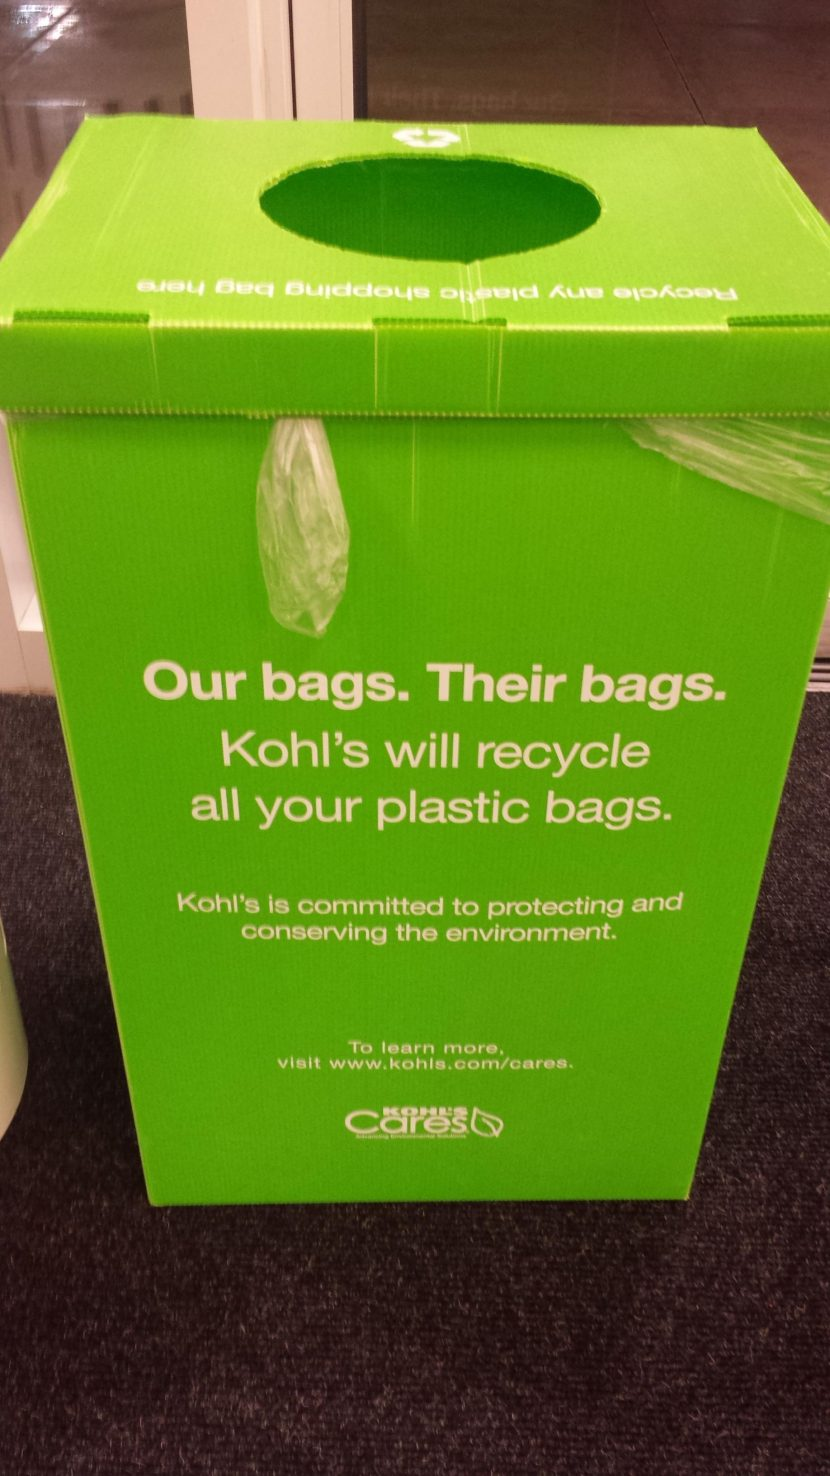 Sustainability Projects Store Shopping Bag Recycling